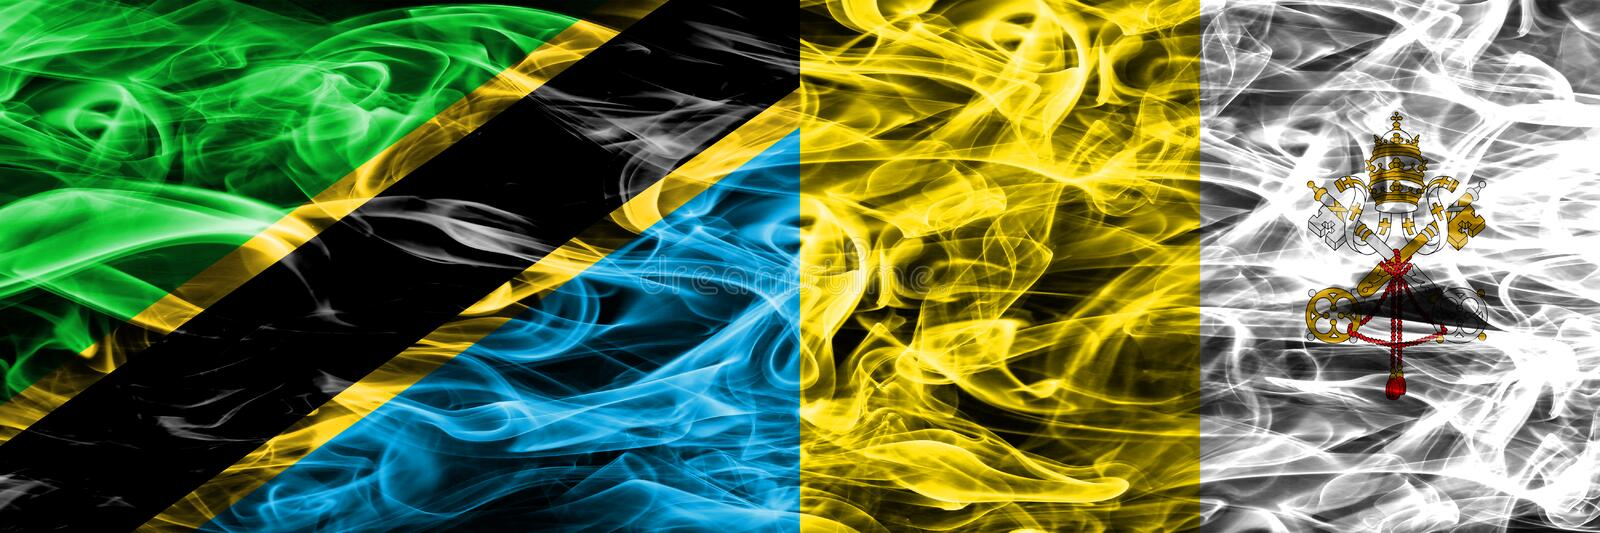 Tanzania vs Vatican city smoke flags placed side by side. Thick colored silky smoke flags of Tanzanian and Vatican city.  royalty free stock photo